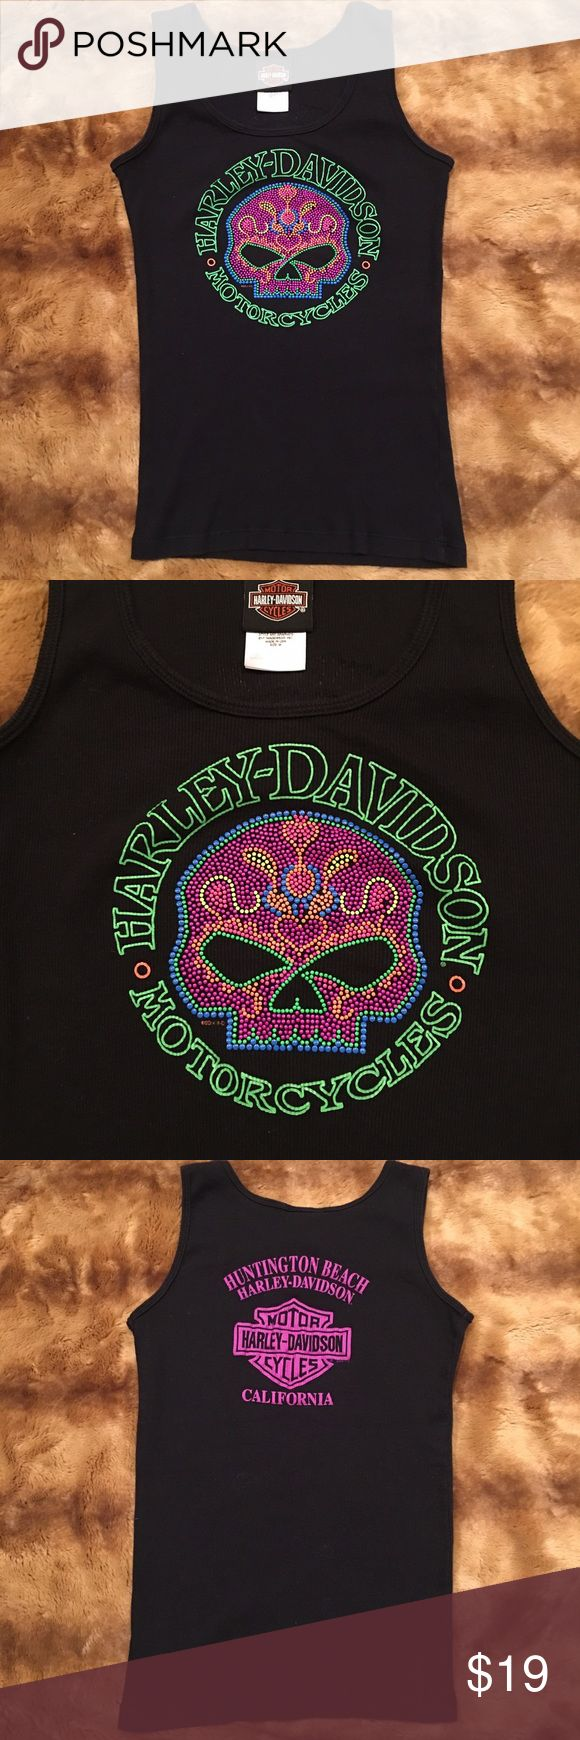 Harley Davidson Tank Top Unique HD Tank from Surf City, Huntington Beach CA! Slightly raised sugar skull design, great colors. Size Medium. Arm holes aren't too big so you can easily wear a bra. Paid a pretty penny for it but it's time to let it go. Very lightly worn. Harley-Davidson Tops Tees - Long Sleeve